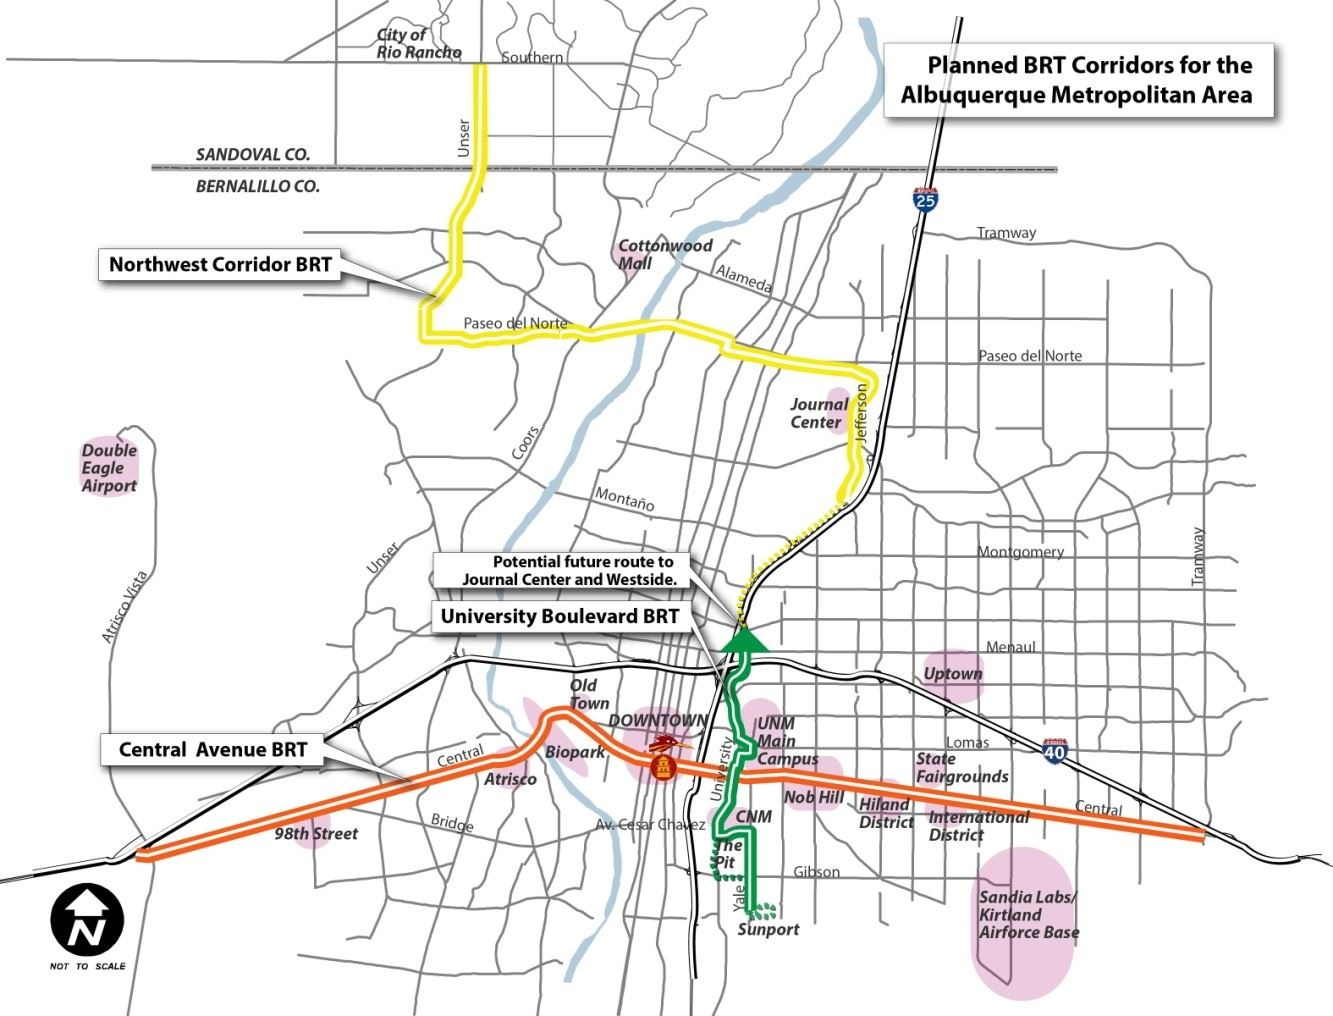 Planned BRT Corridors for the Albuquerque Metro Area